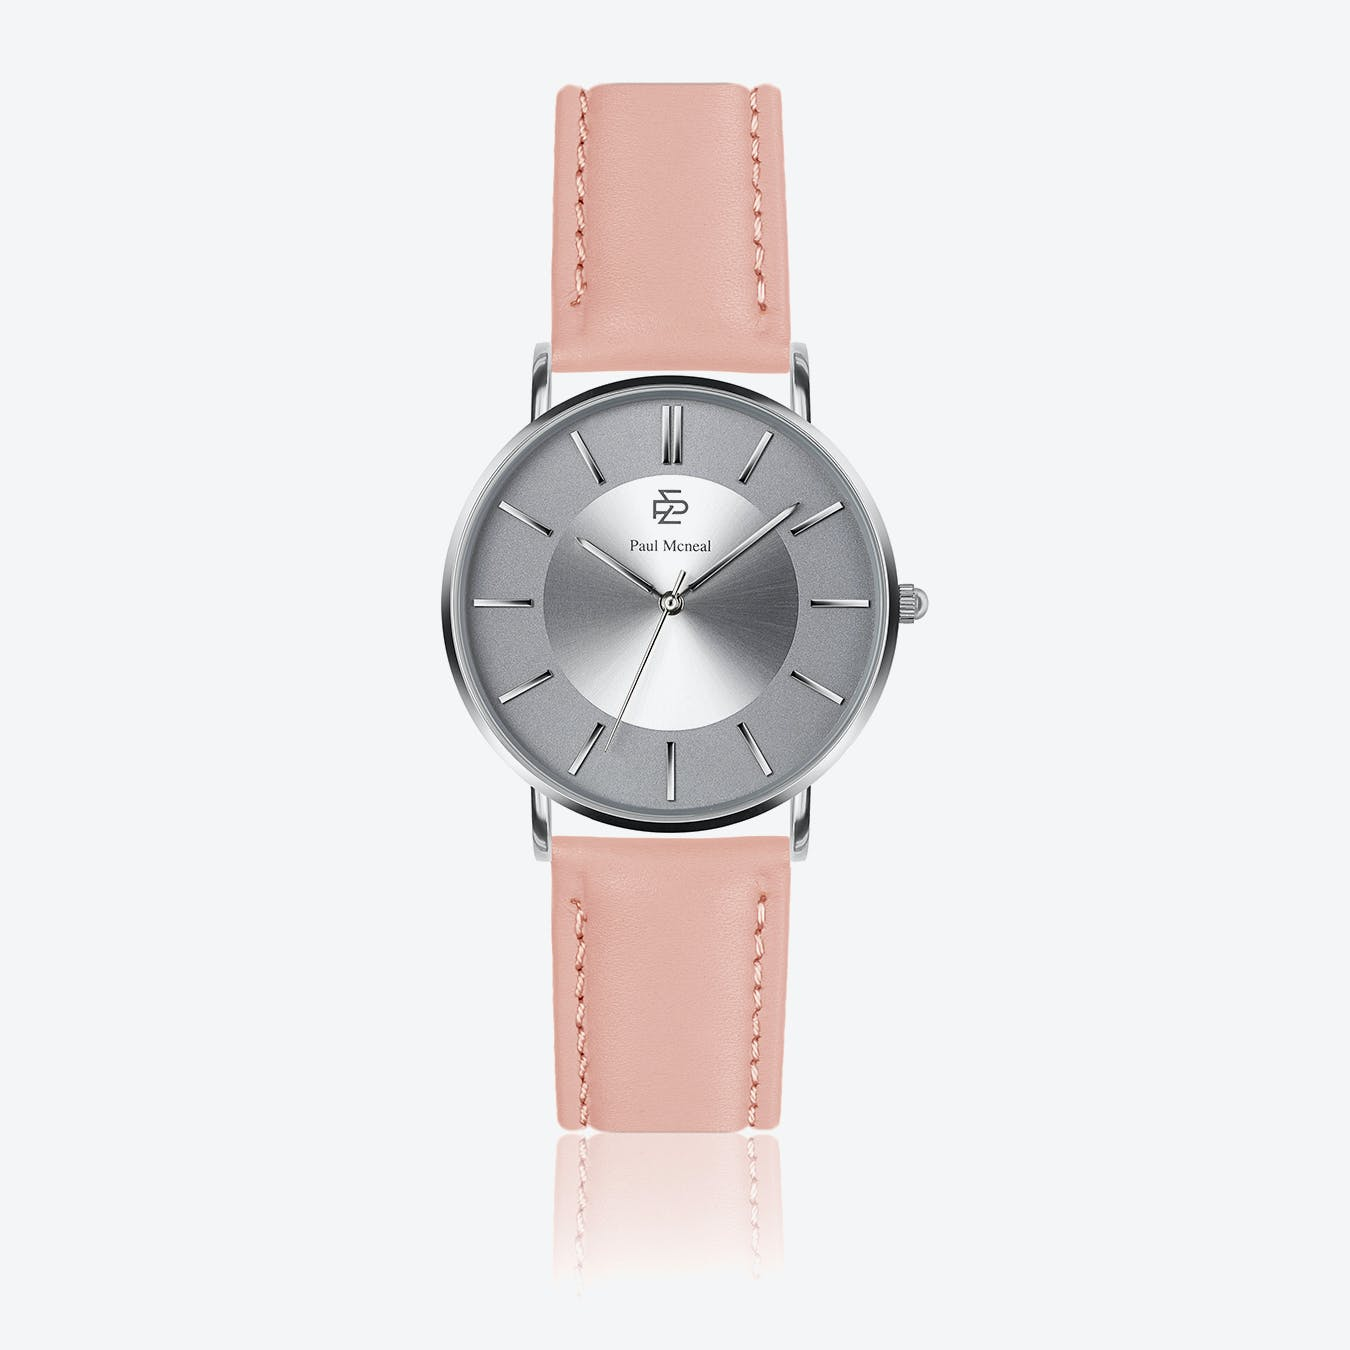 Pink Leather Watch w/ Silver Sunray Face - Ø 40 mm